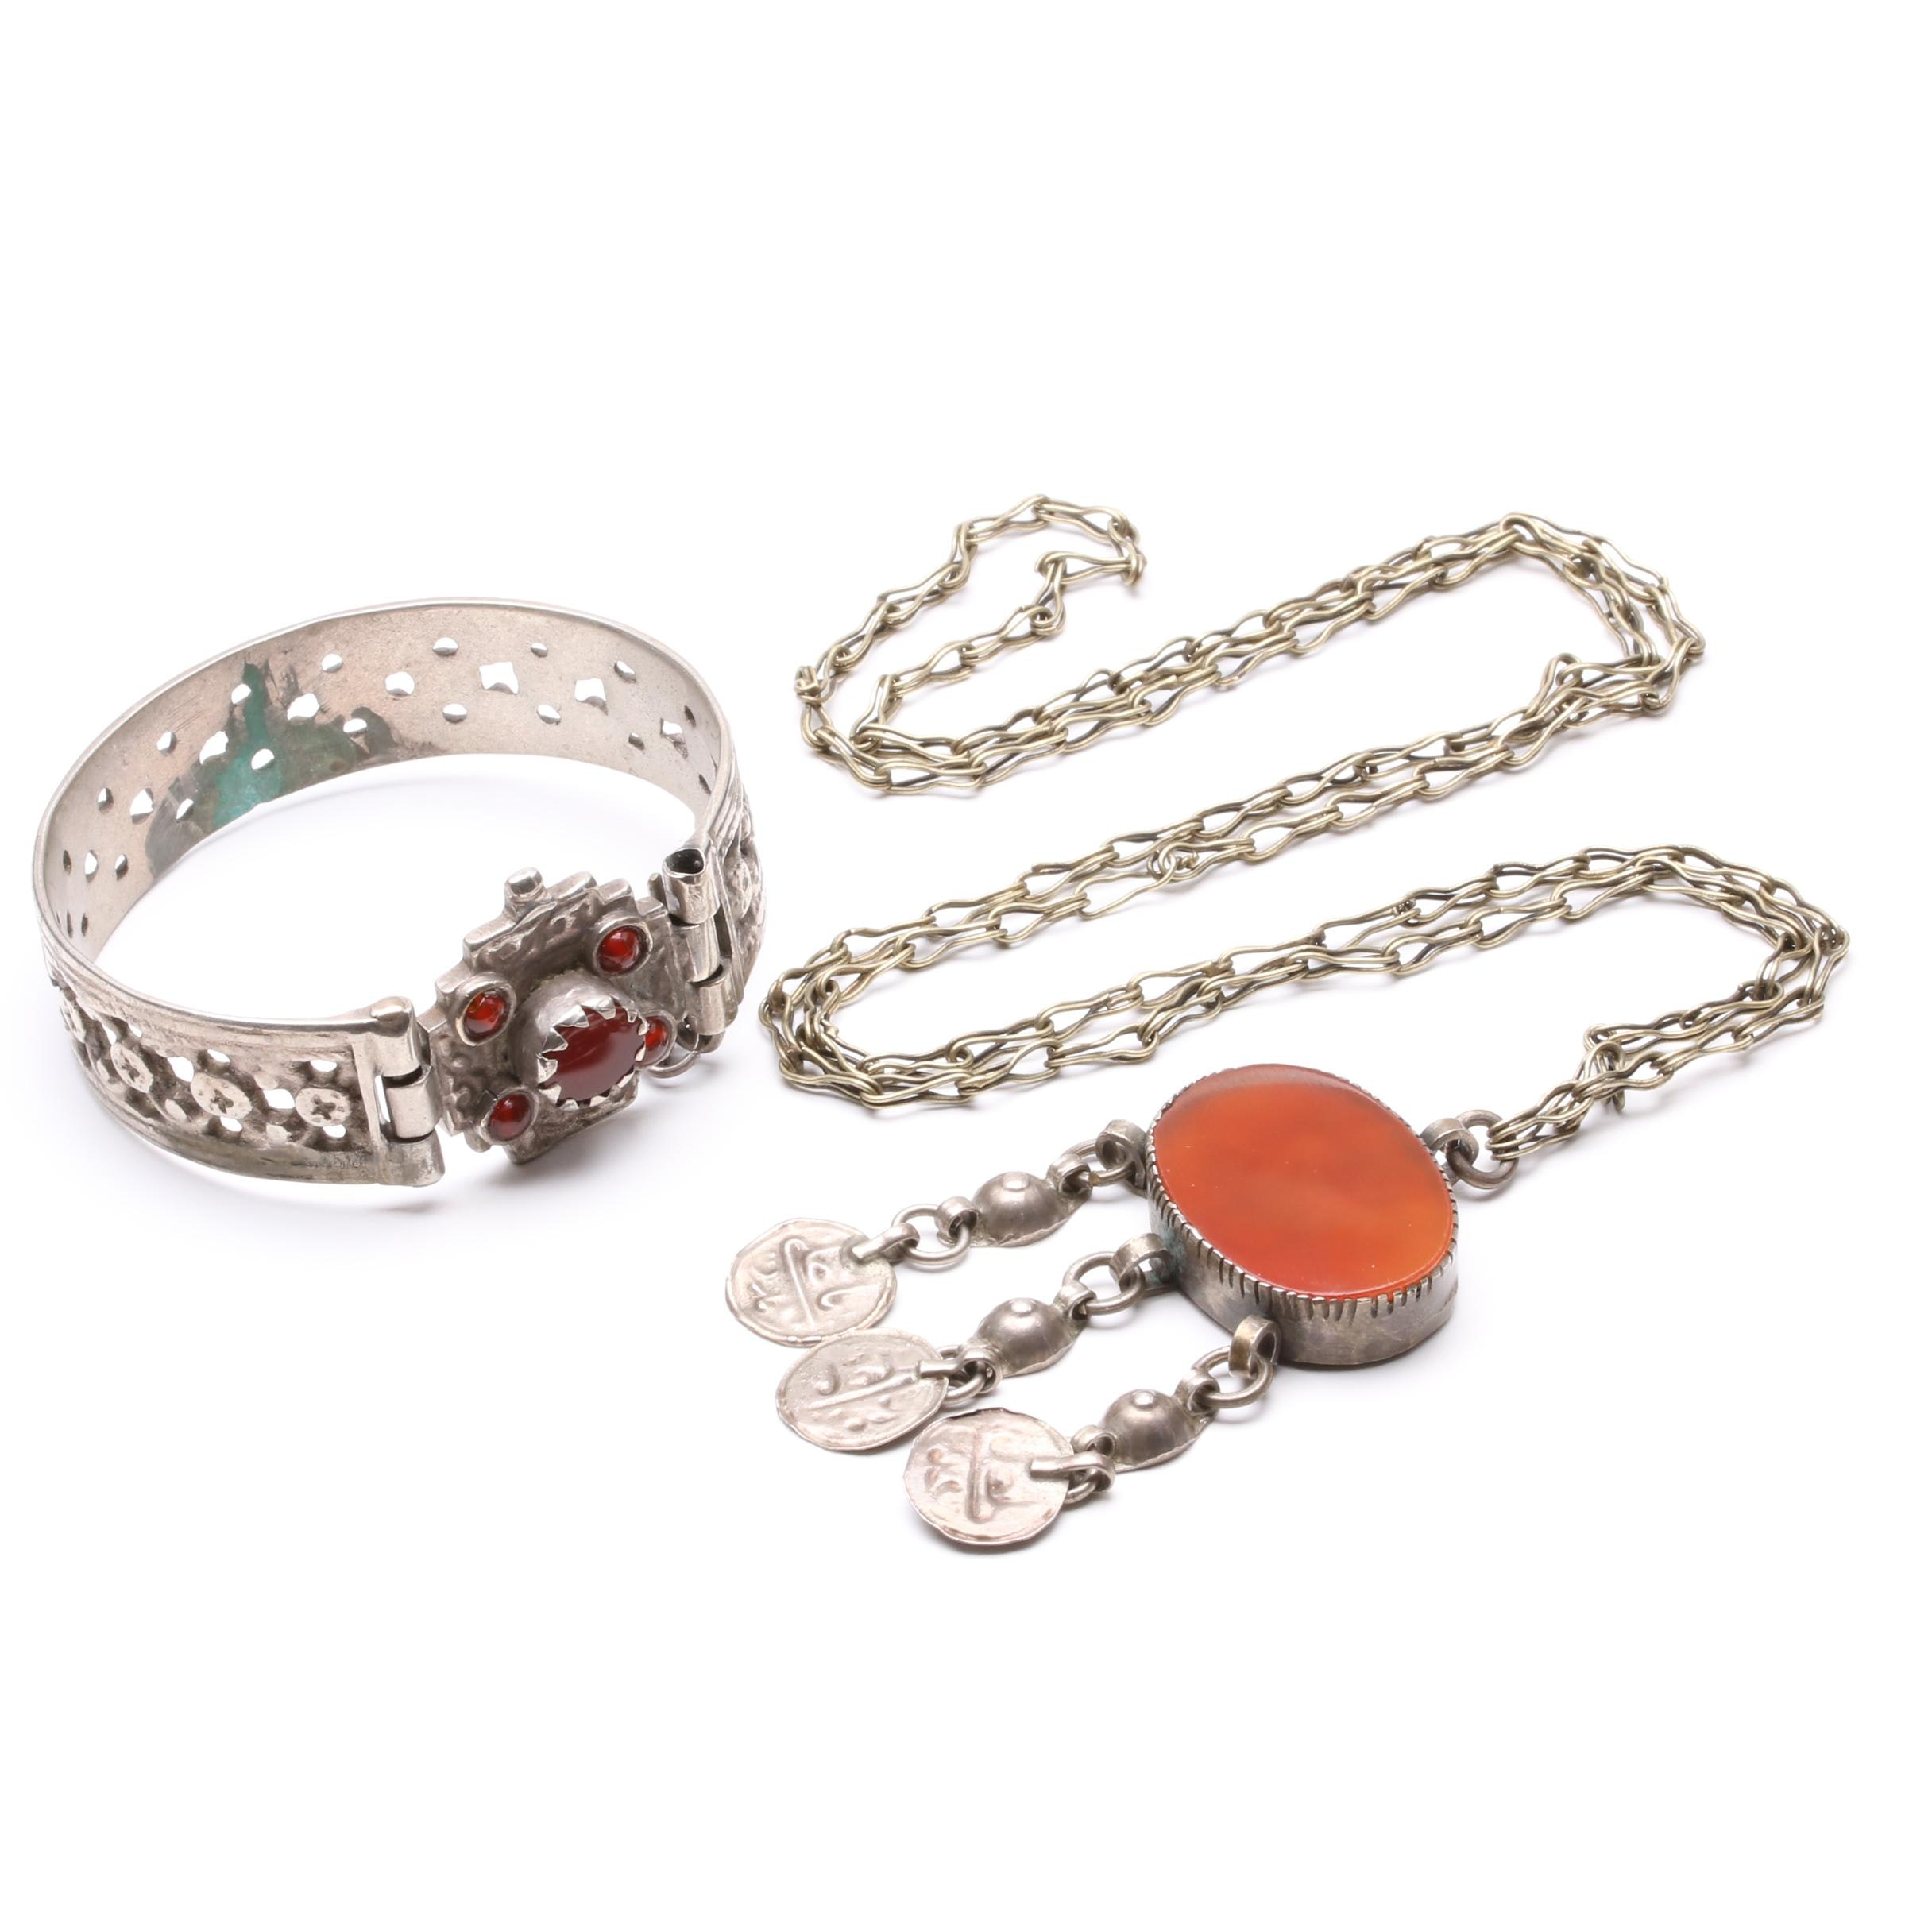 Sterling Silver and 800 Silver Carnelian Necklace and Bracelet